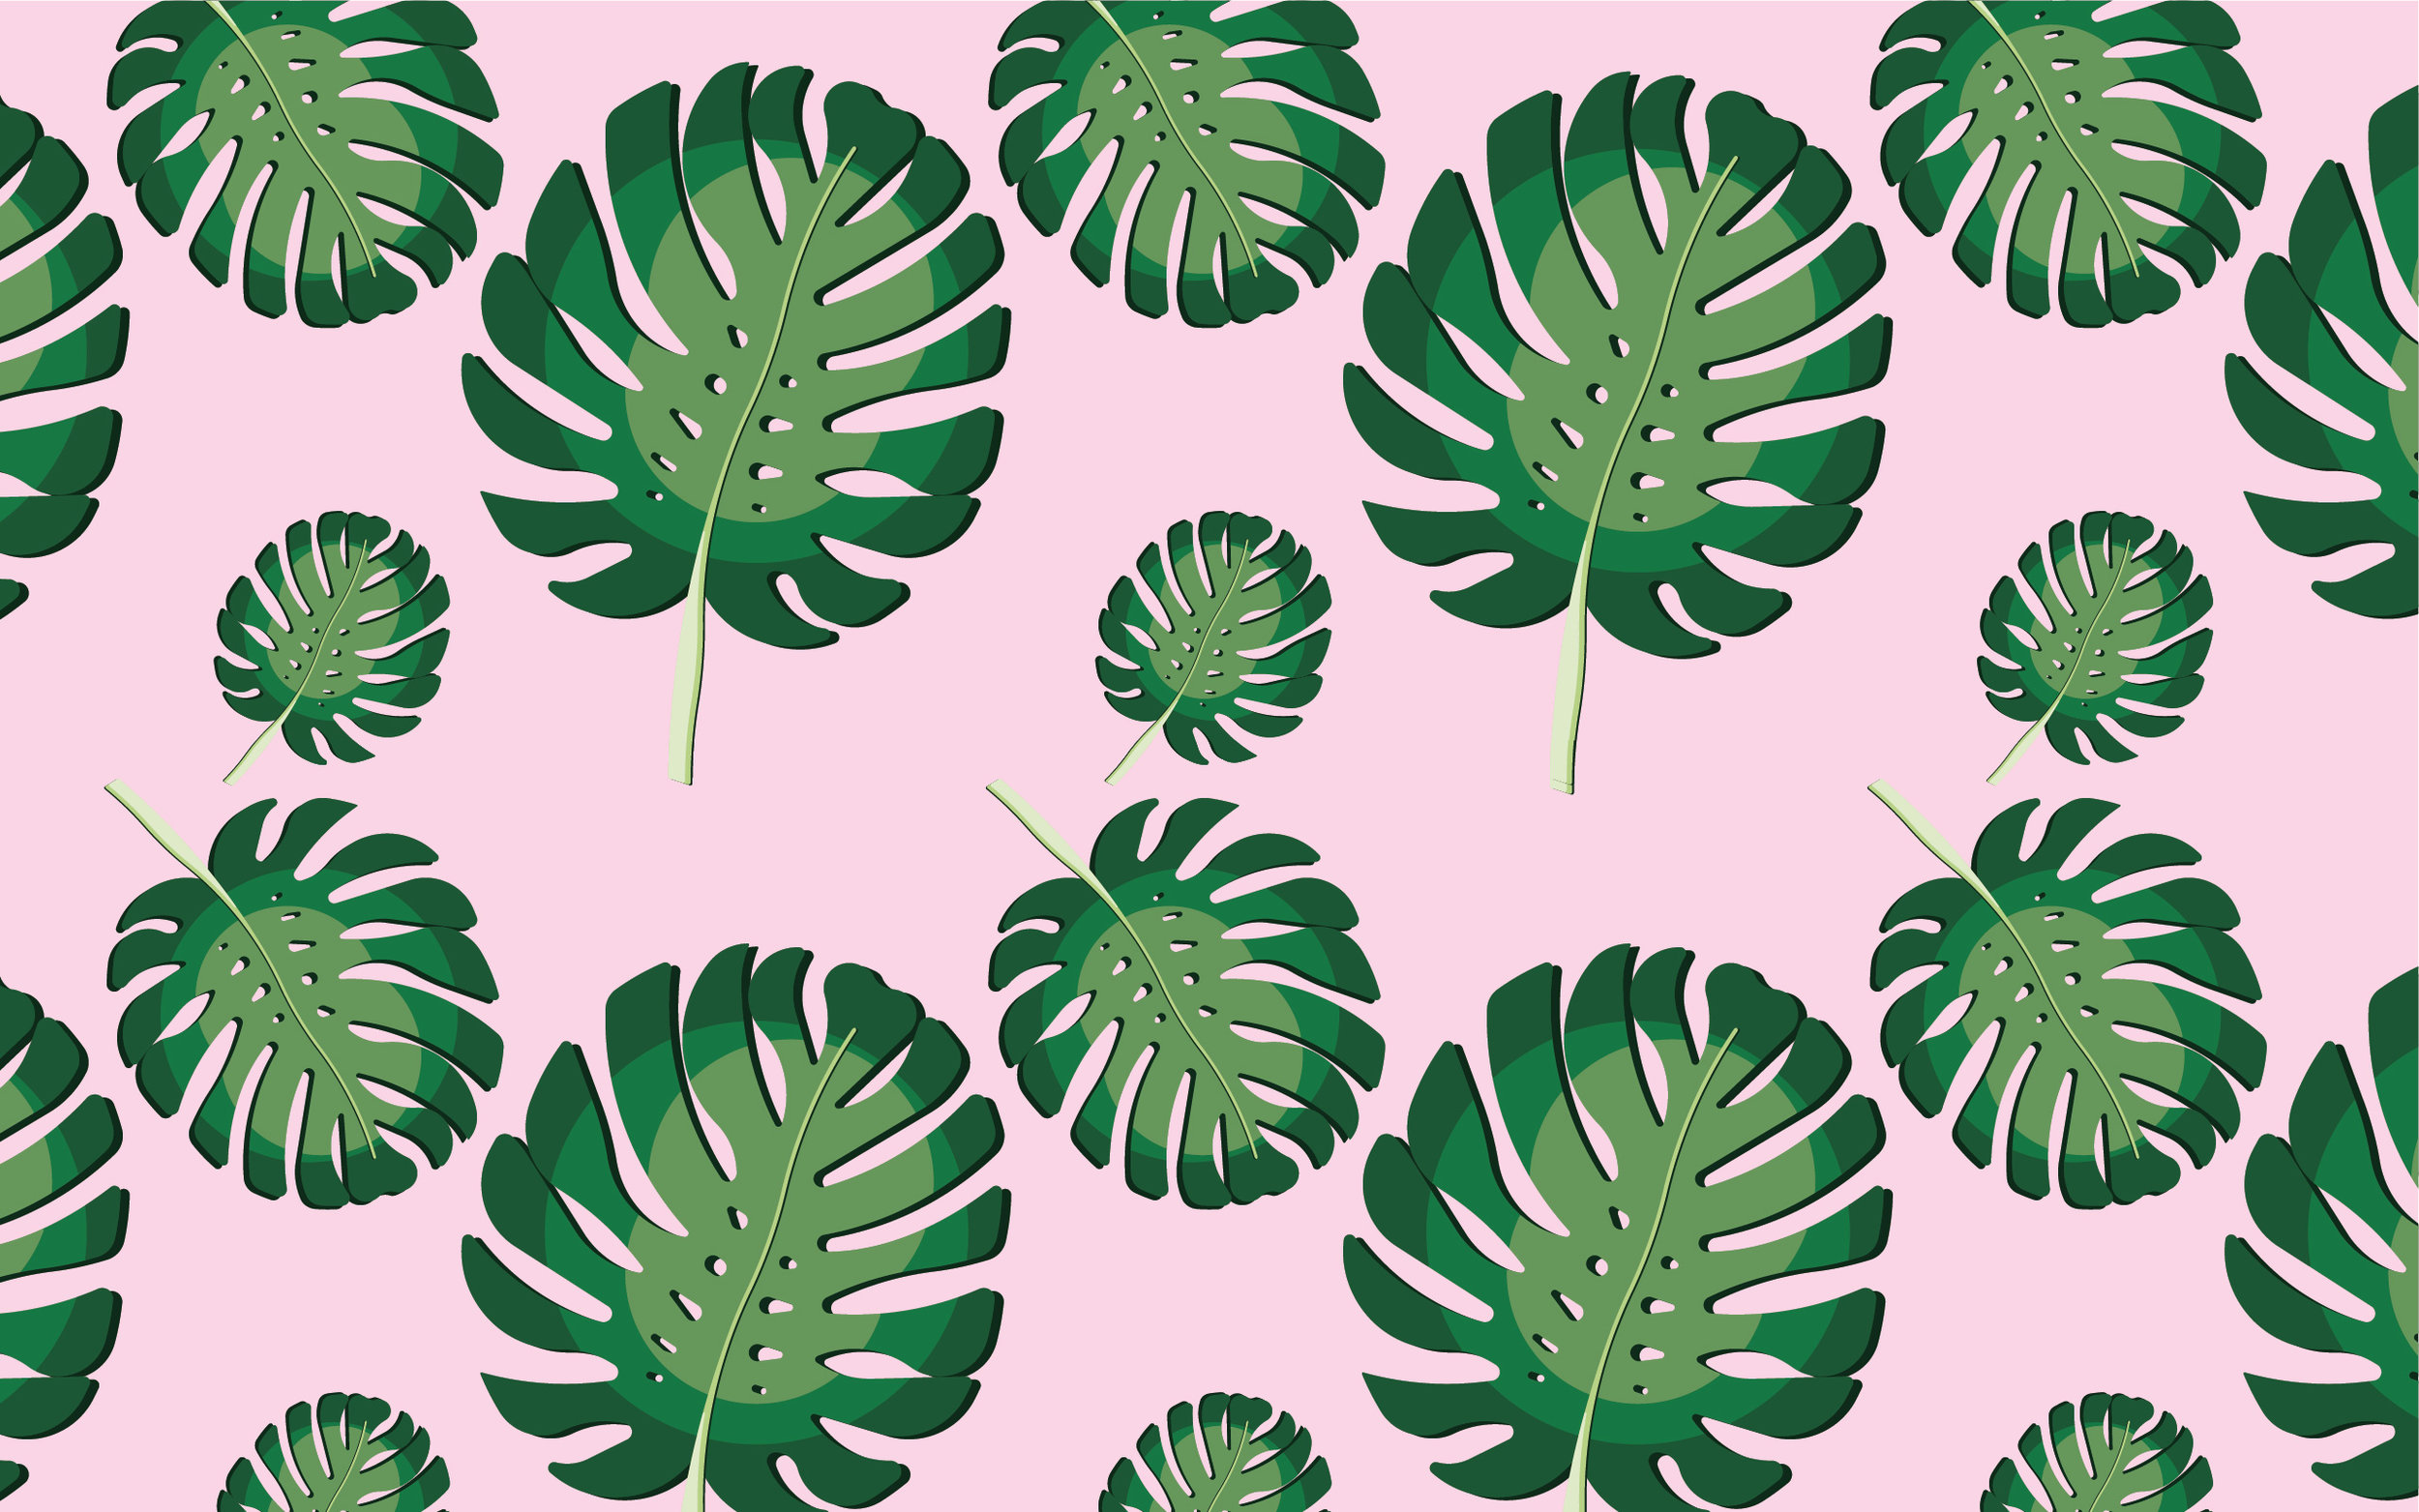 monstera_desktop_background.jpg